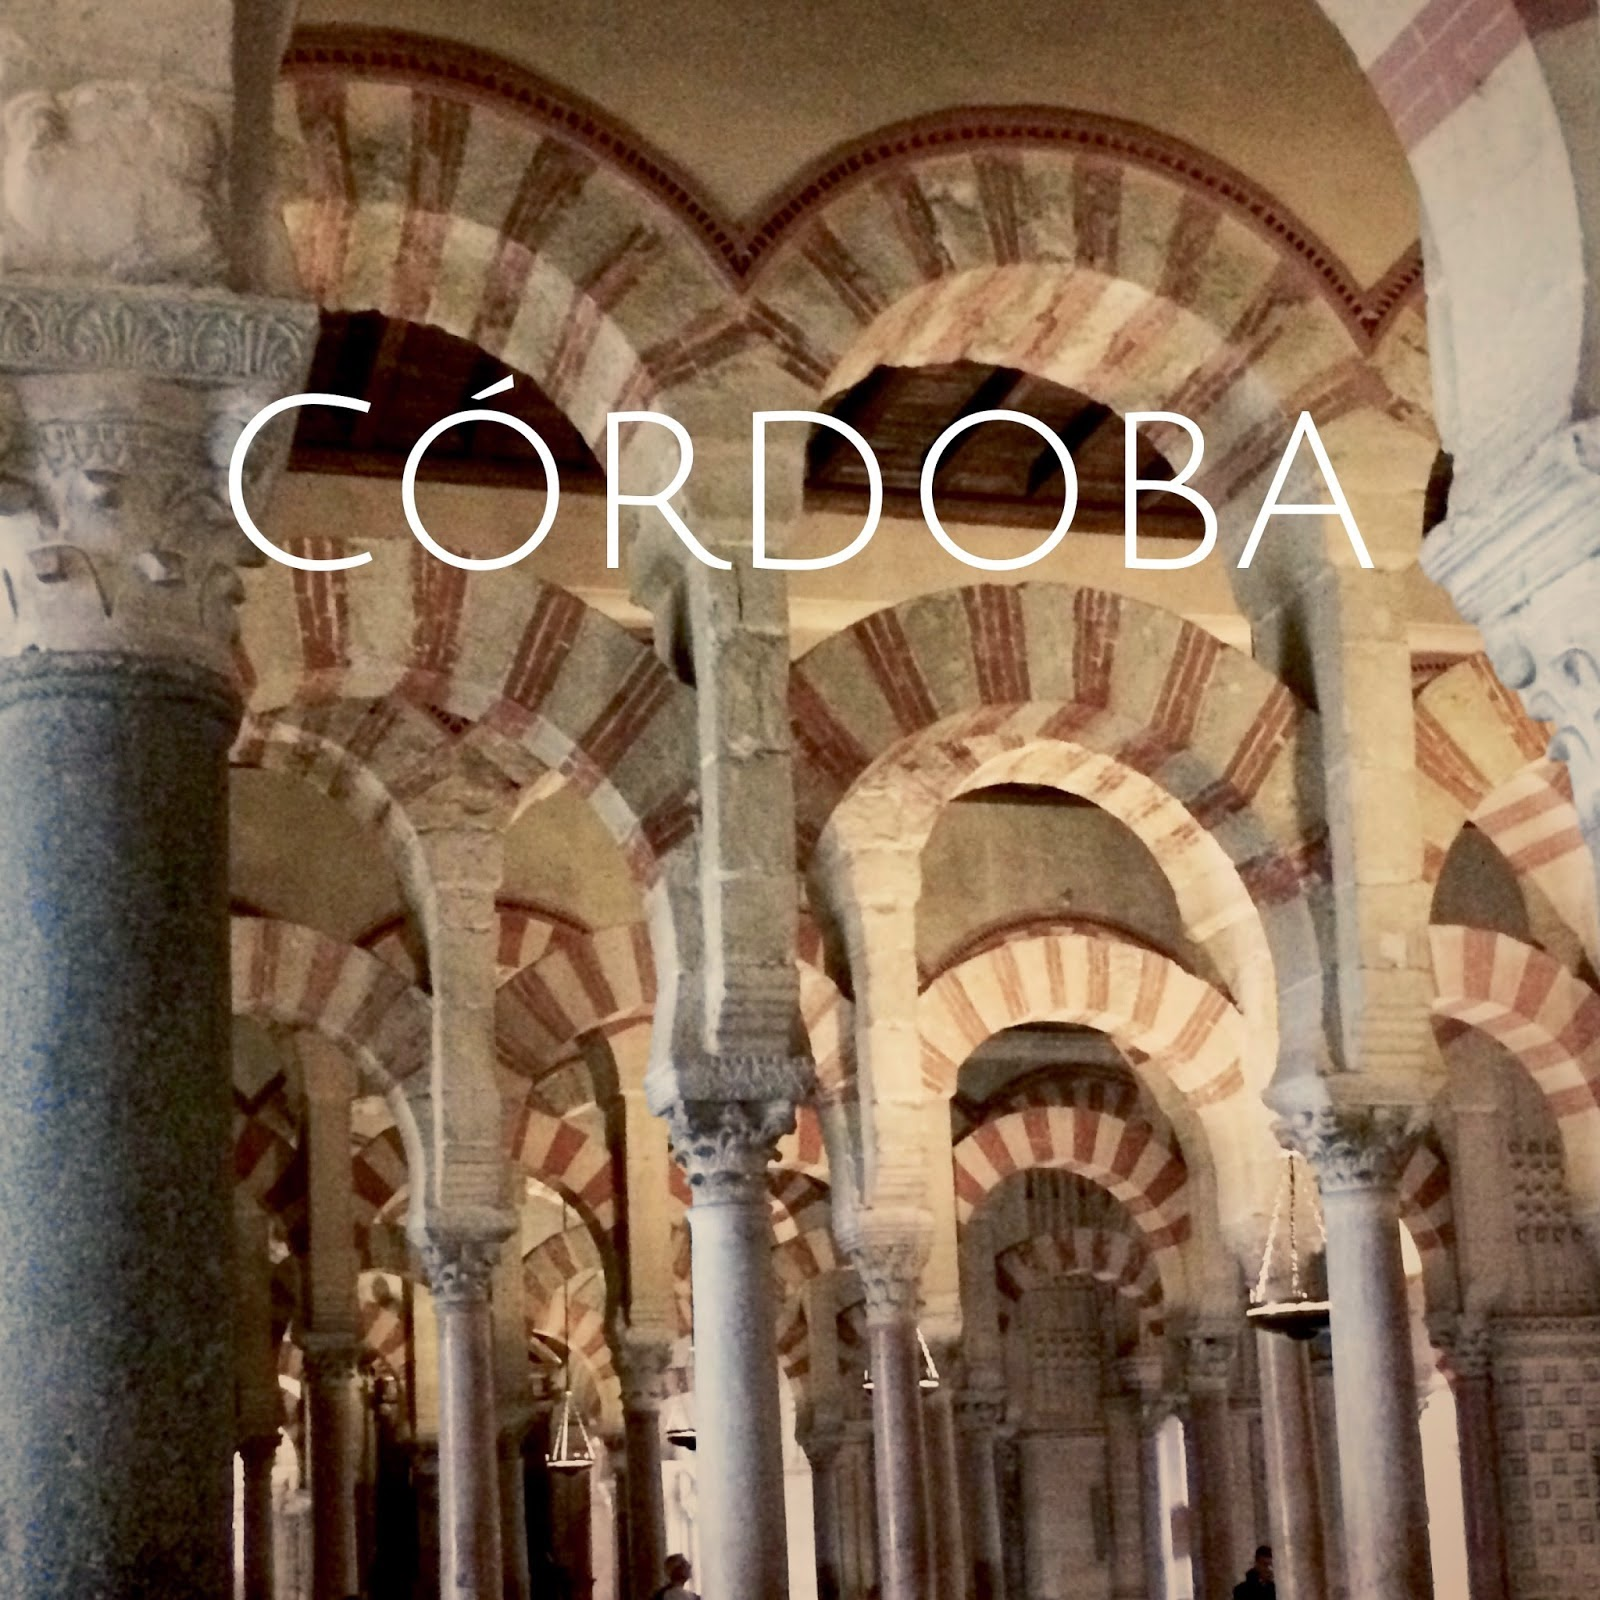 http://melthemidnightbaker.blogspot.com/2014/06/cordoba-pillars-and-arches-and-allies.html